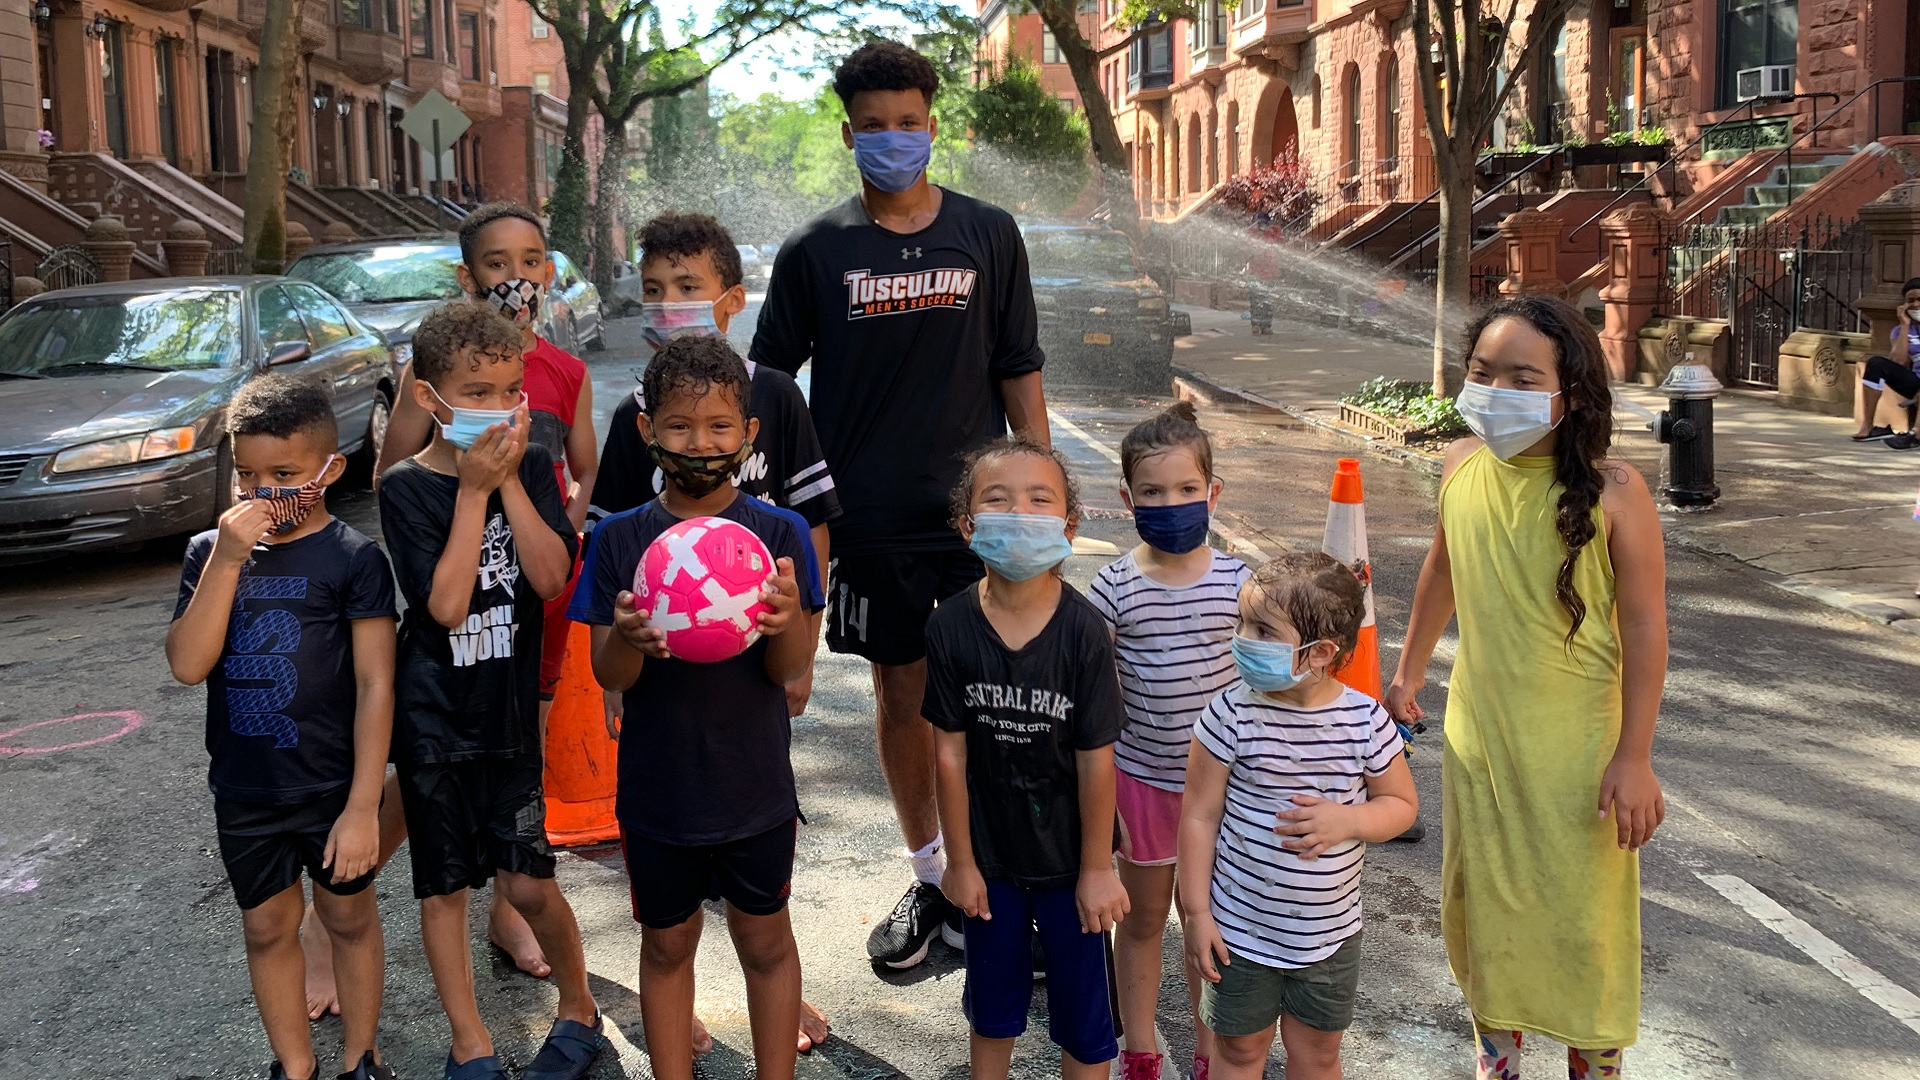 Heppard provides summer soccer training for NYC youth